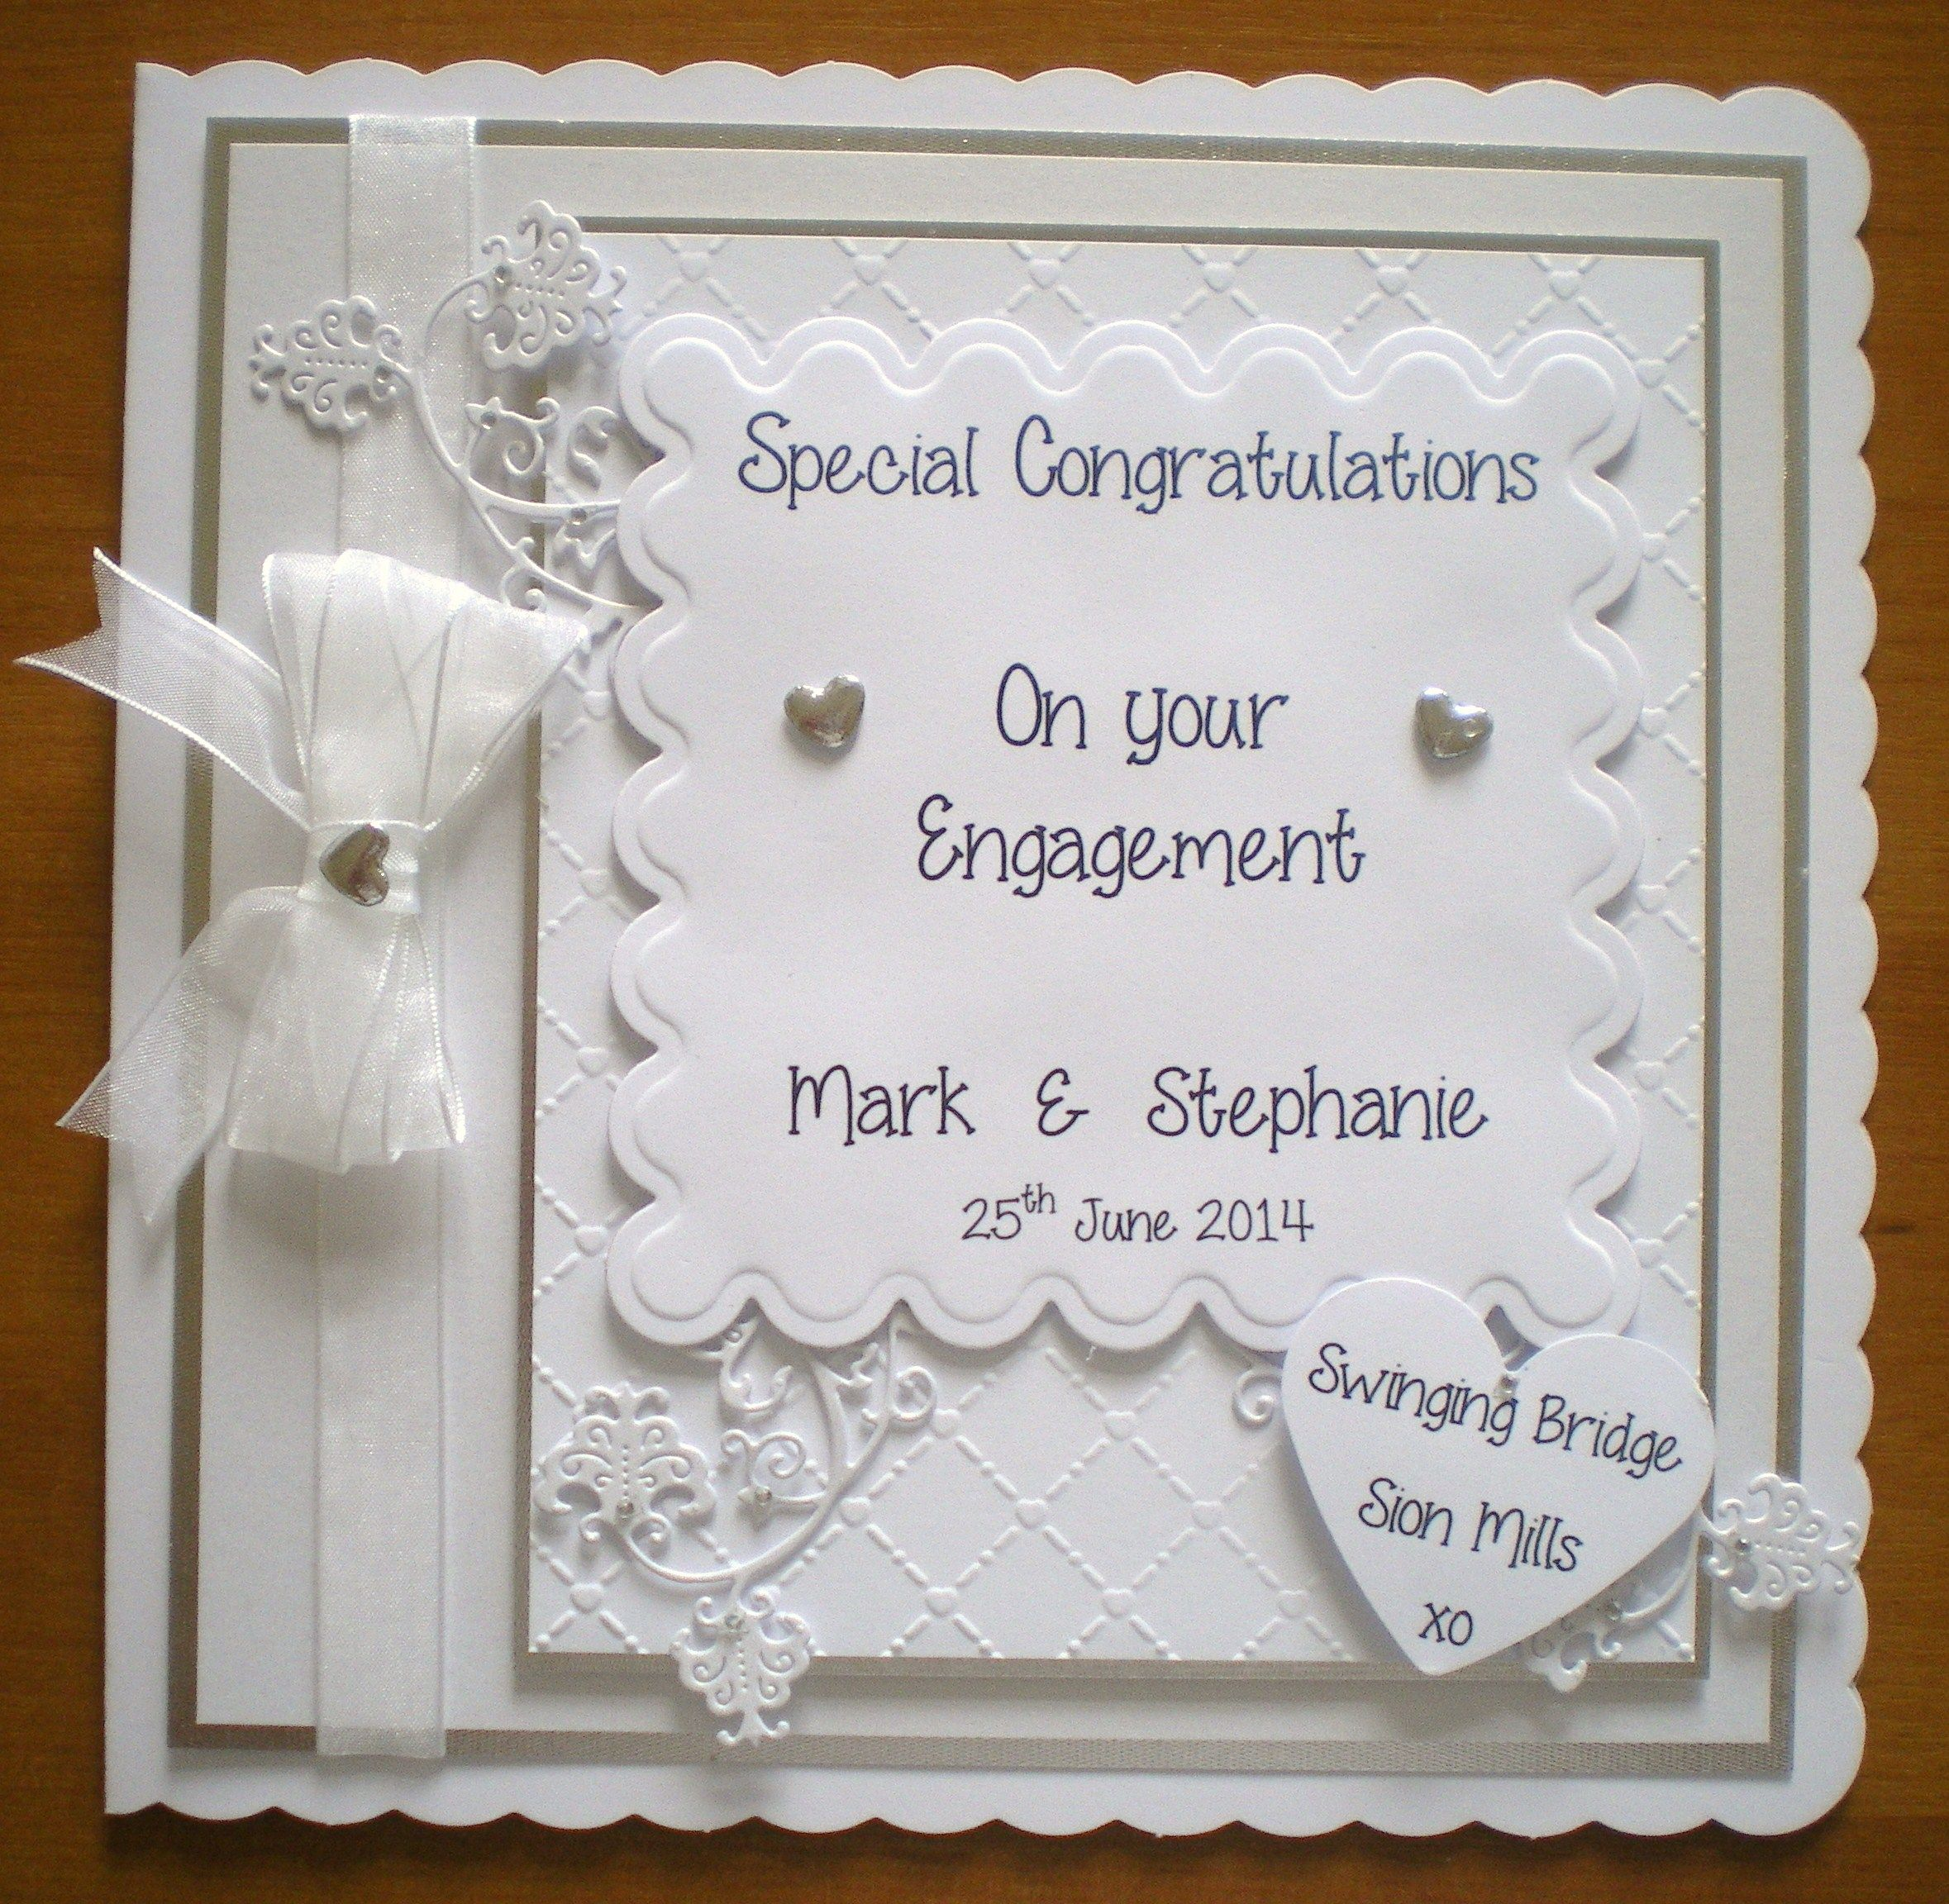 Engagement Card   Engagement cards, Wedding cards, Anniversary cards